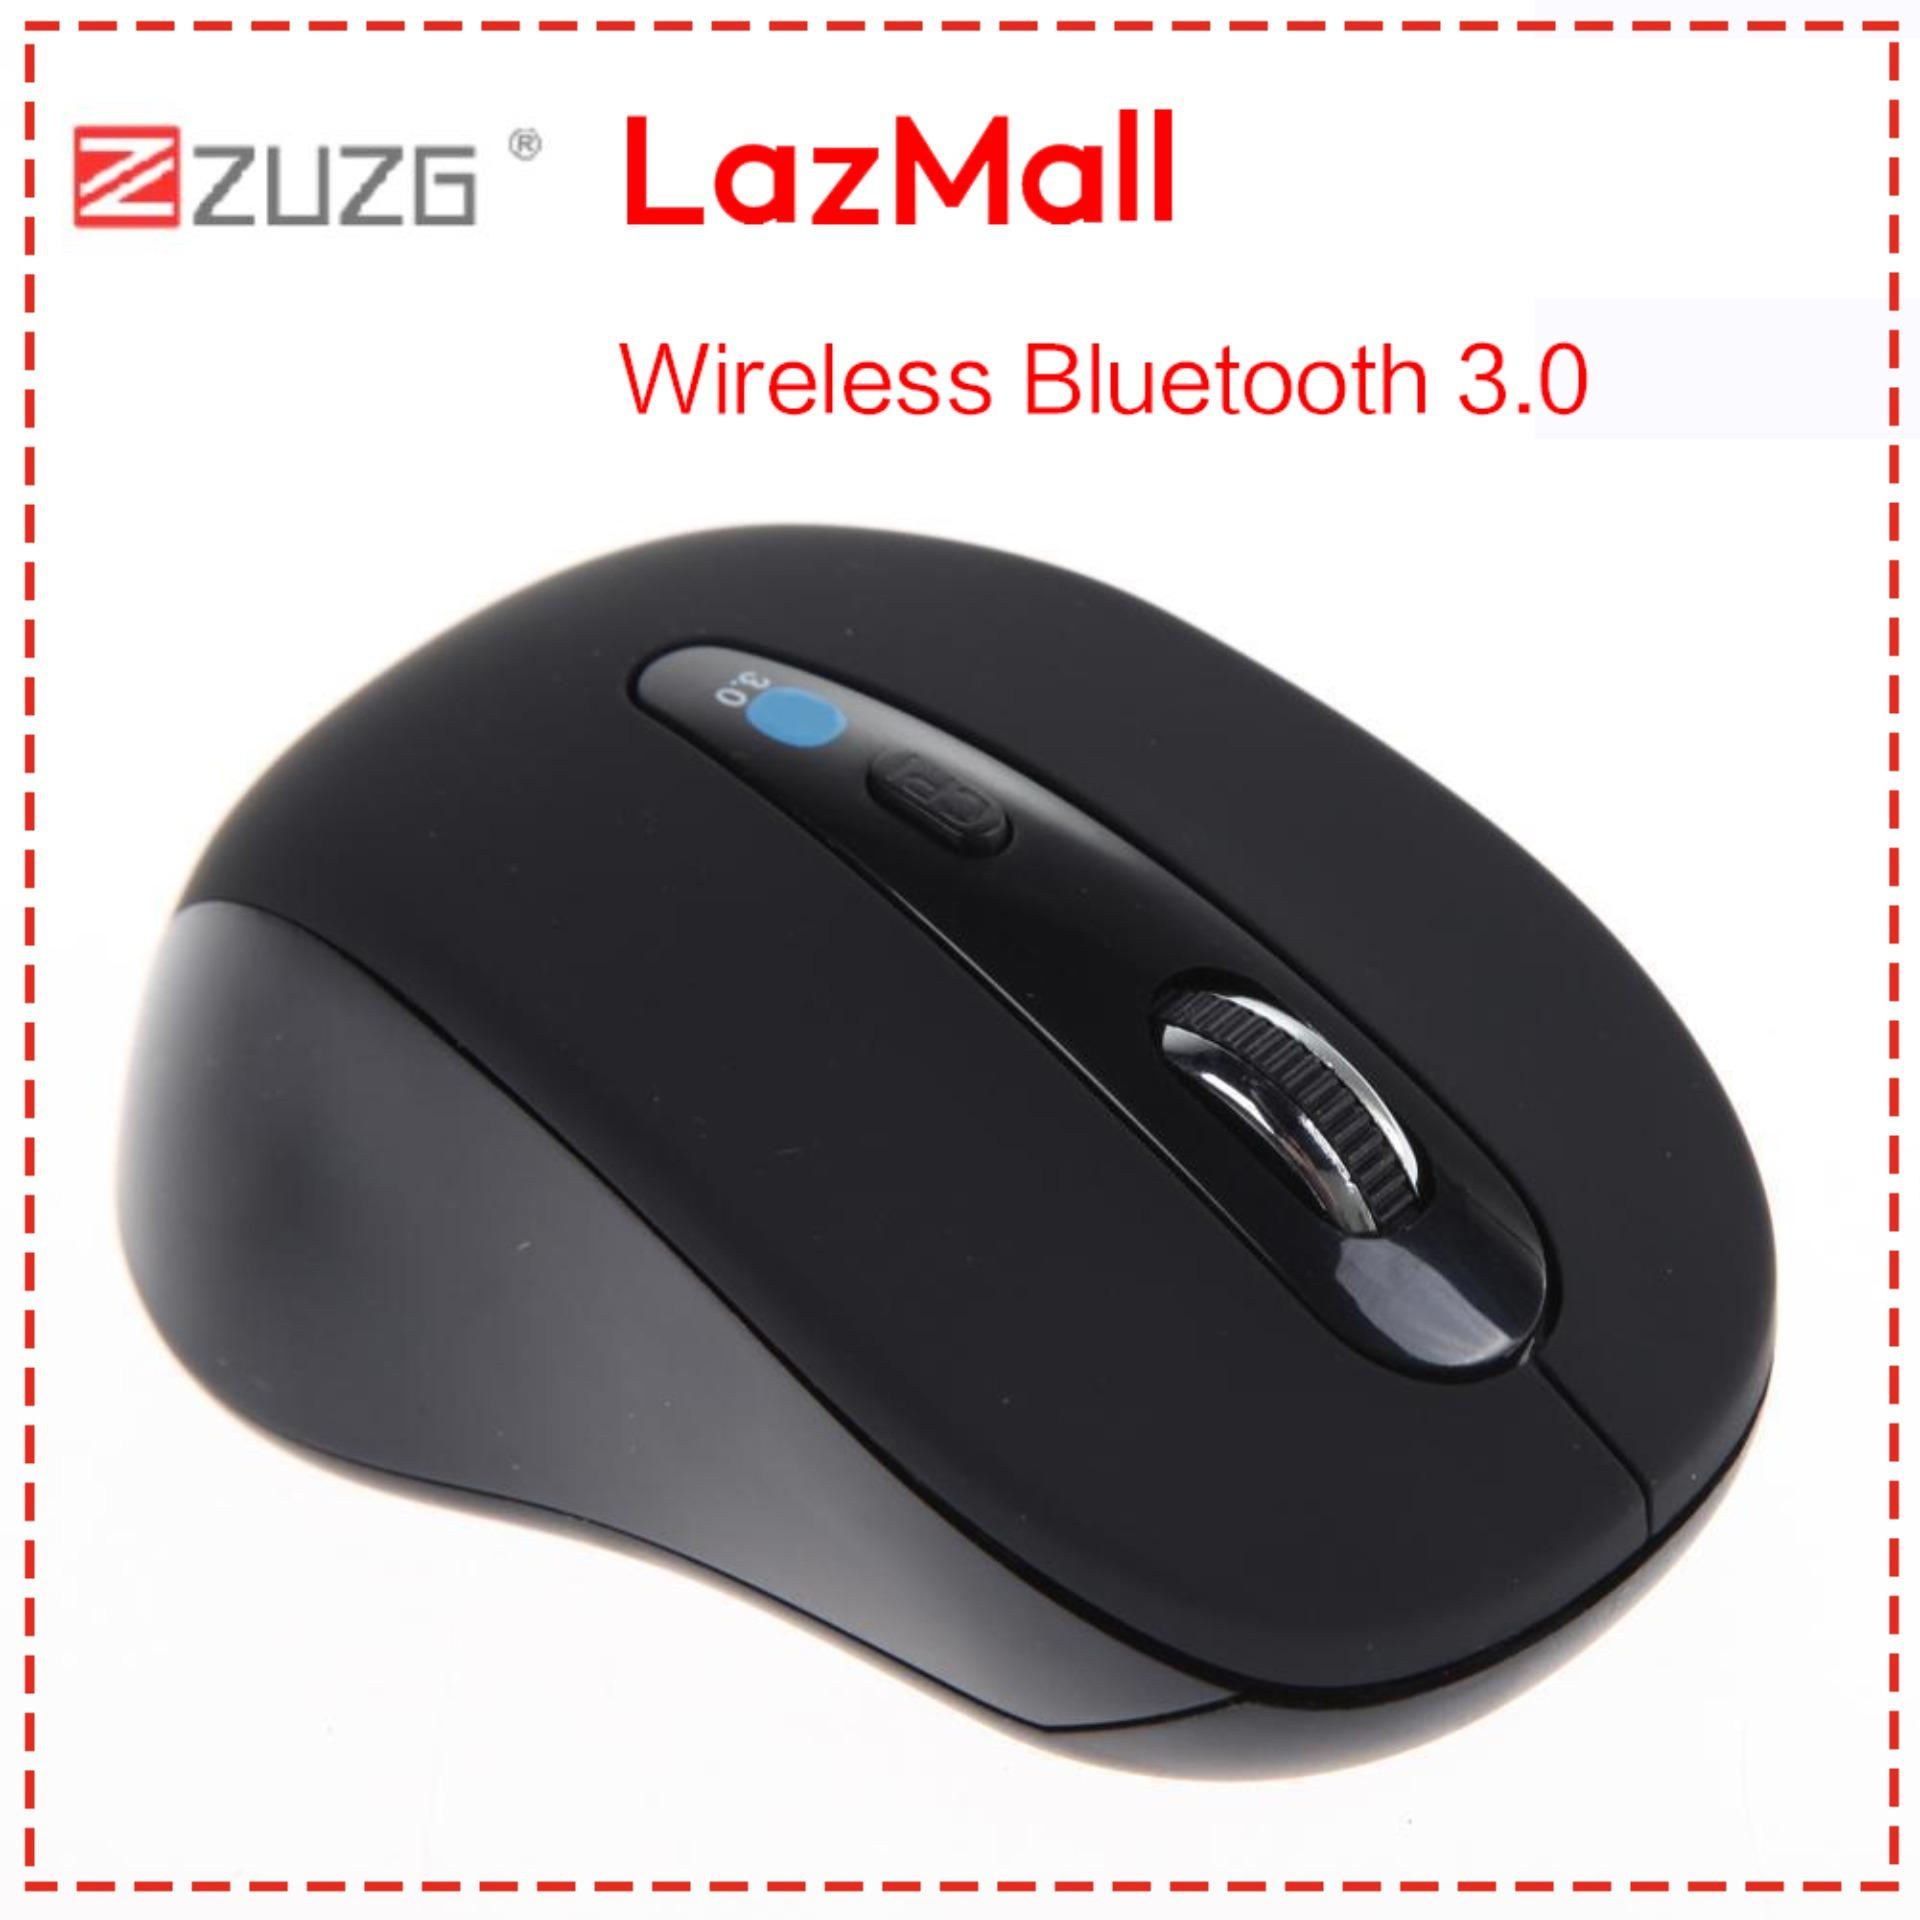 【BDAY SALE】 Mini Wireless Bluetooth 3.0 Optical Mouse for Win8 Tablet Surface